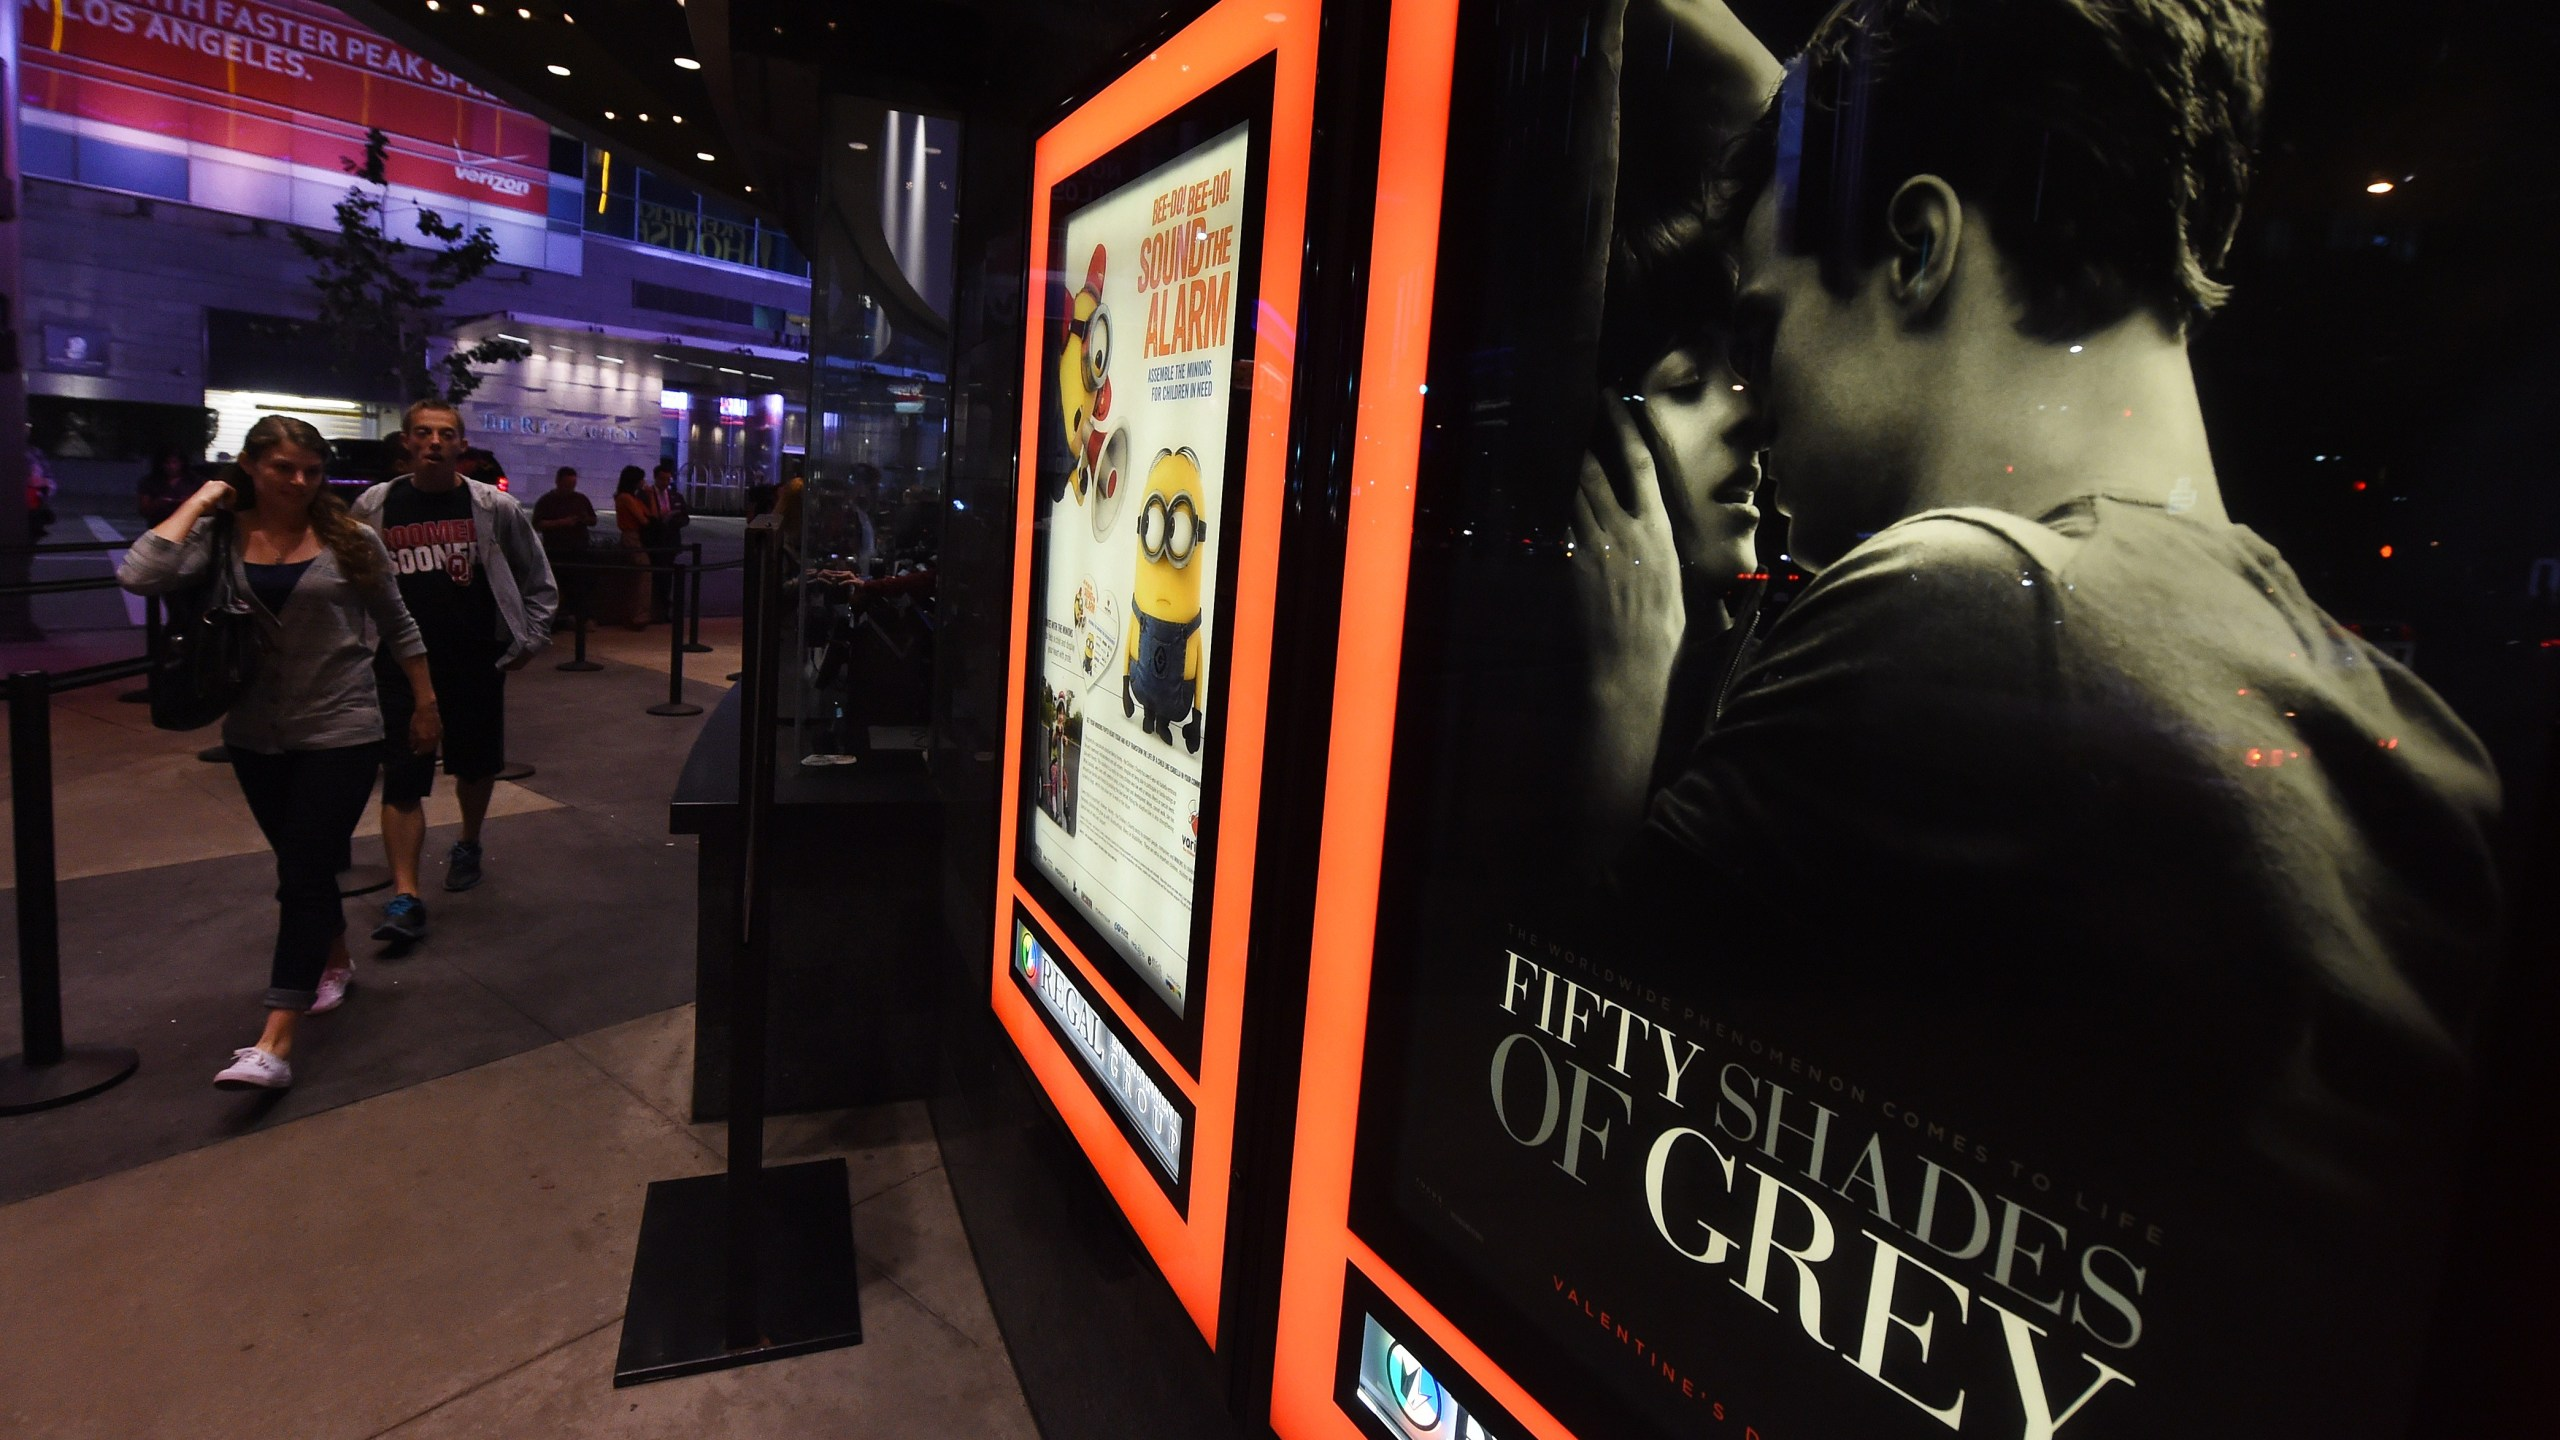 """People arrive to watch the film """"Fifty Shades of Grey"""" on its opening day in Los Angeles on Feb. 12, 2015. (Credit: Mark Ralston / AFP / Getty Images)"""